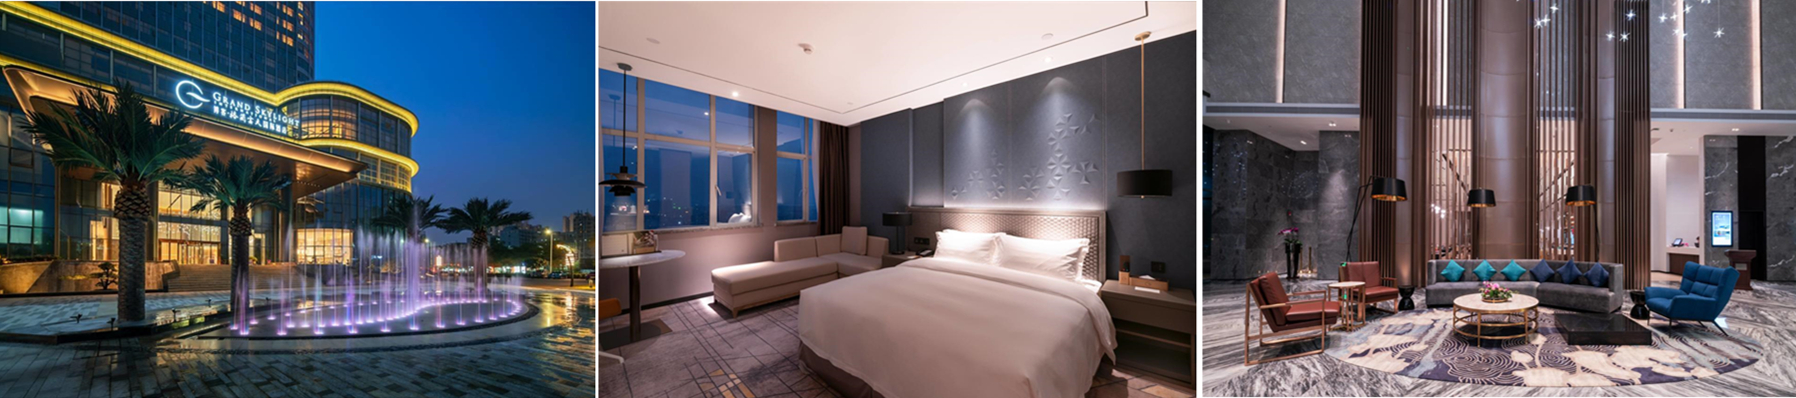 Grand Skylight International Hotel Blog Baoan Shenzhen